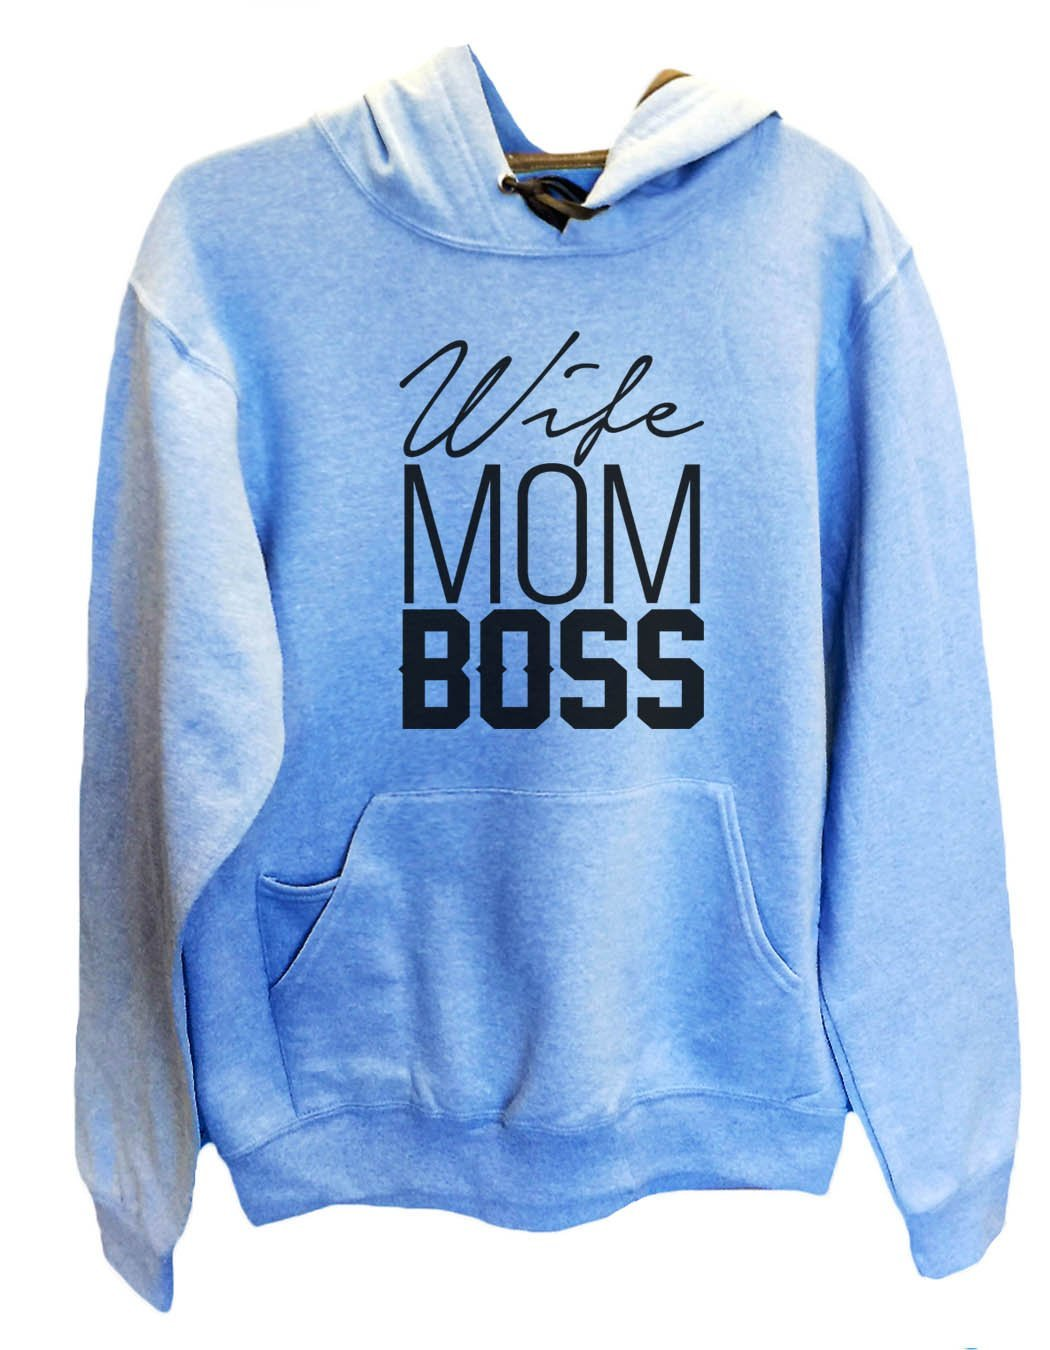 UNISEX HOODIE - Wife Mom Boss - FUNNY MENS AND WOMENS HOODED SWEATSHIRTS - 2156a Funny Shirt Small / North Carolina Blue